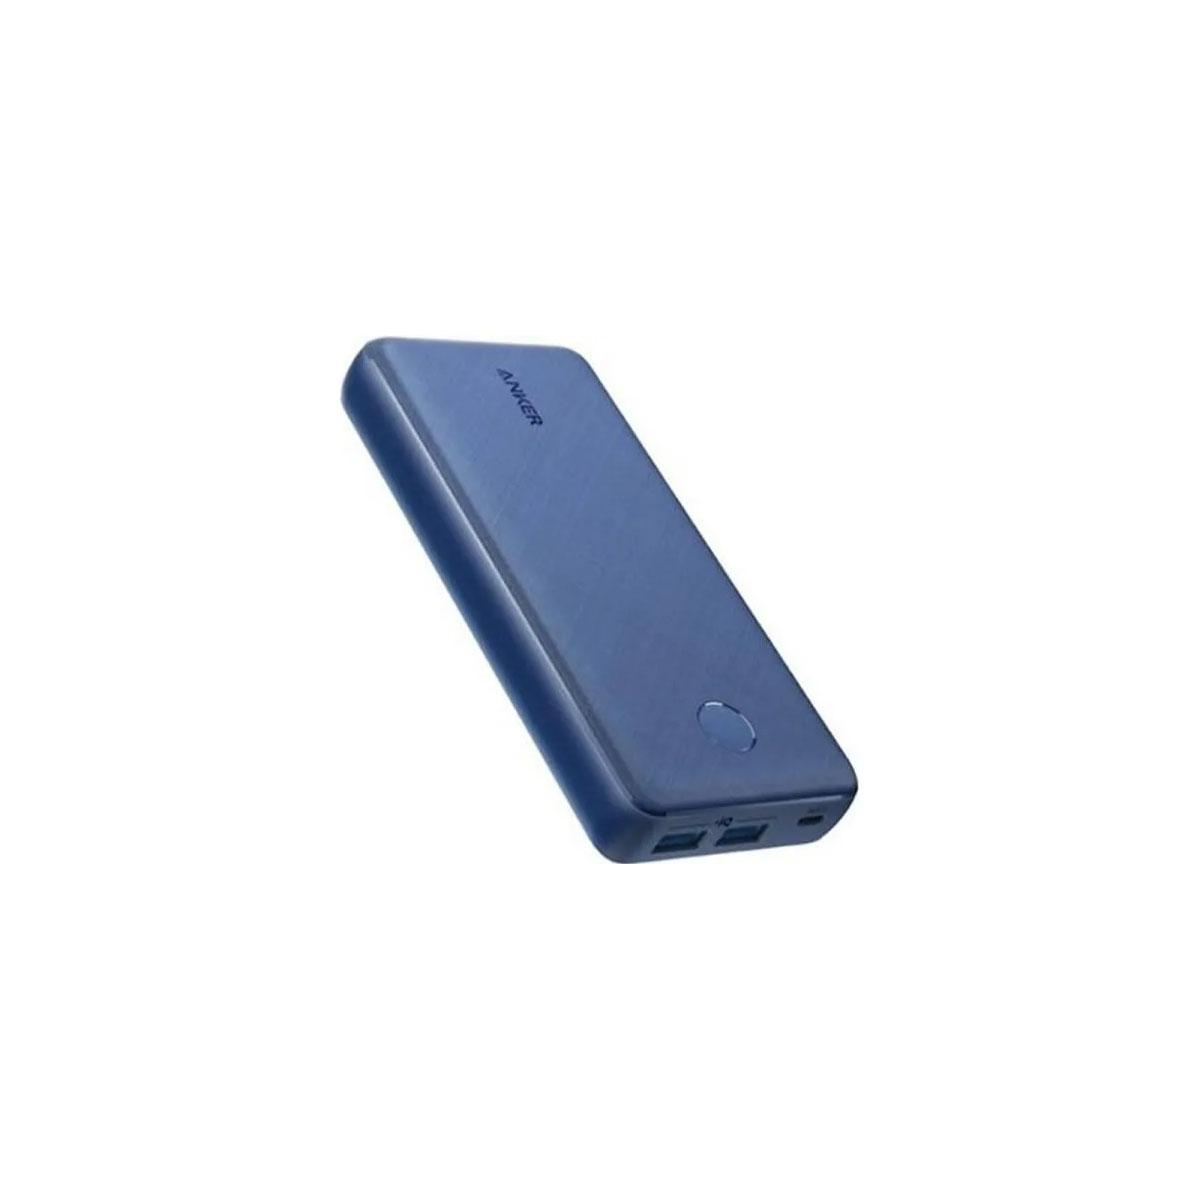 Anker Power Bank 20,000mAh with 2 USB-A PowerCore Select 20K Blue